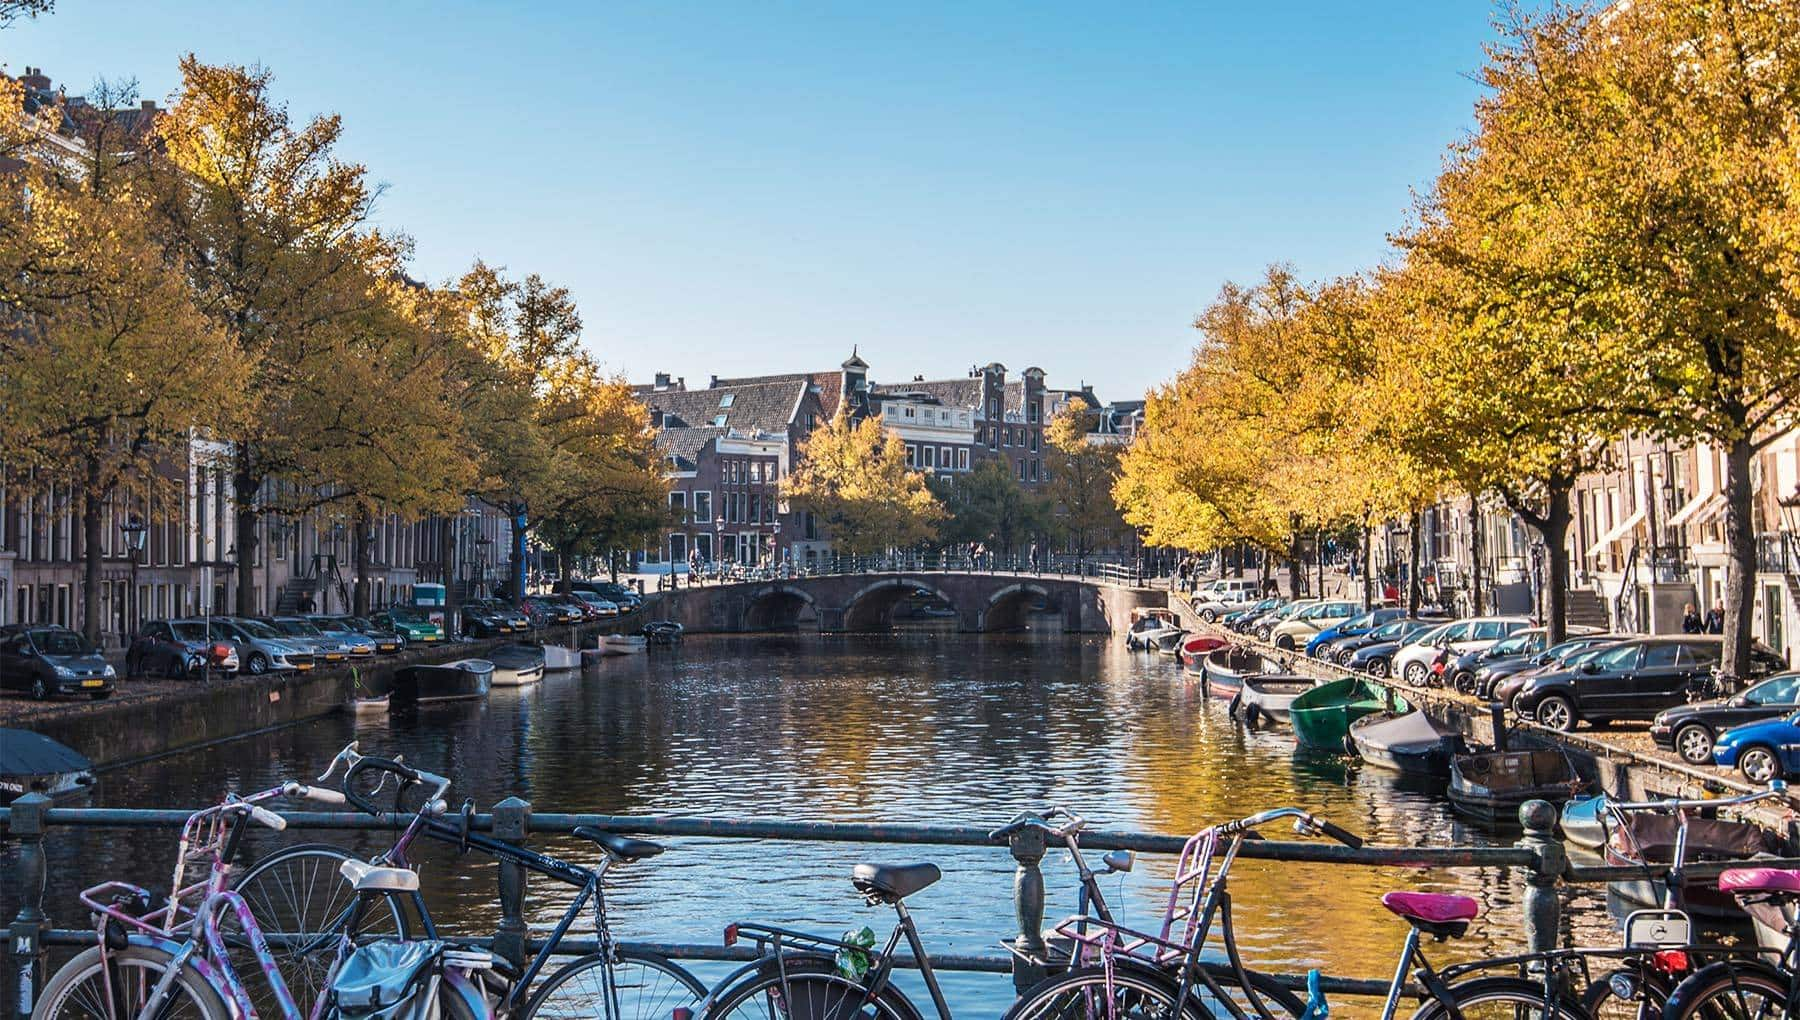 Salt Lake City to Amsterdam Netherlands $458 RT Airfares on United Airlines BE (Travel January